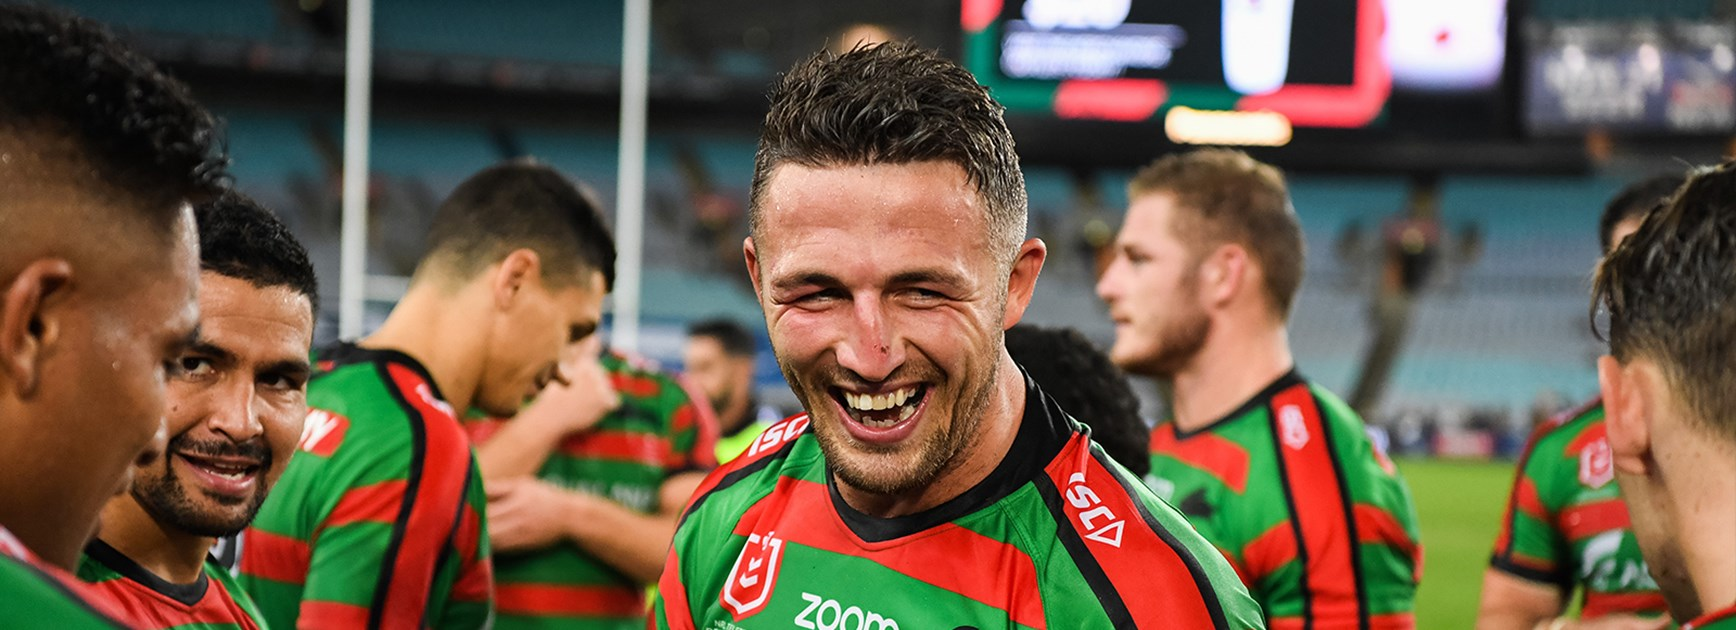 NRL Team of the Week: Round 8 results